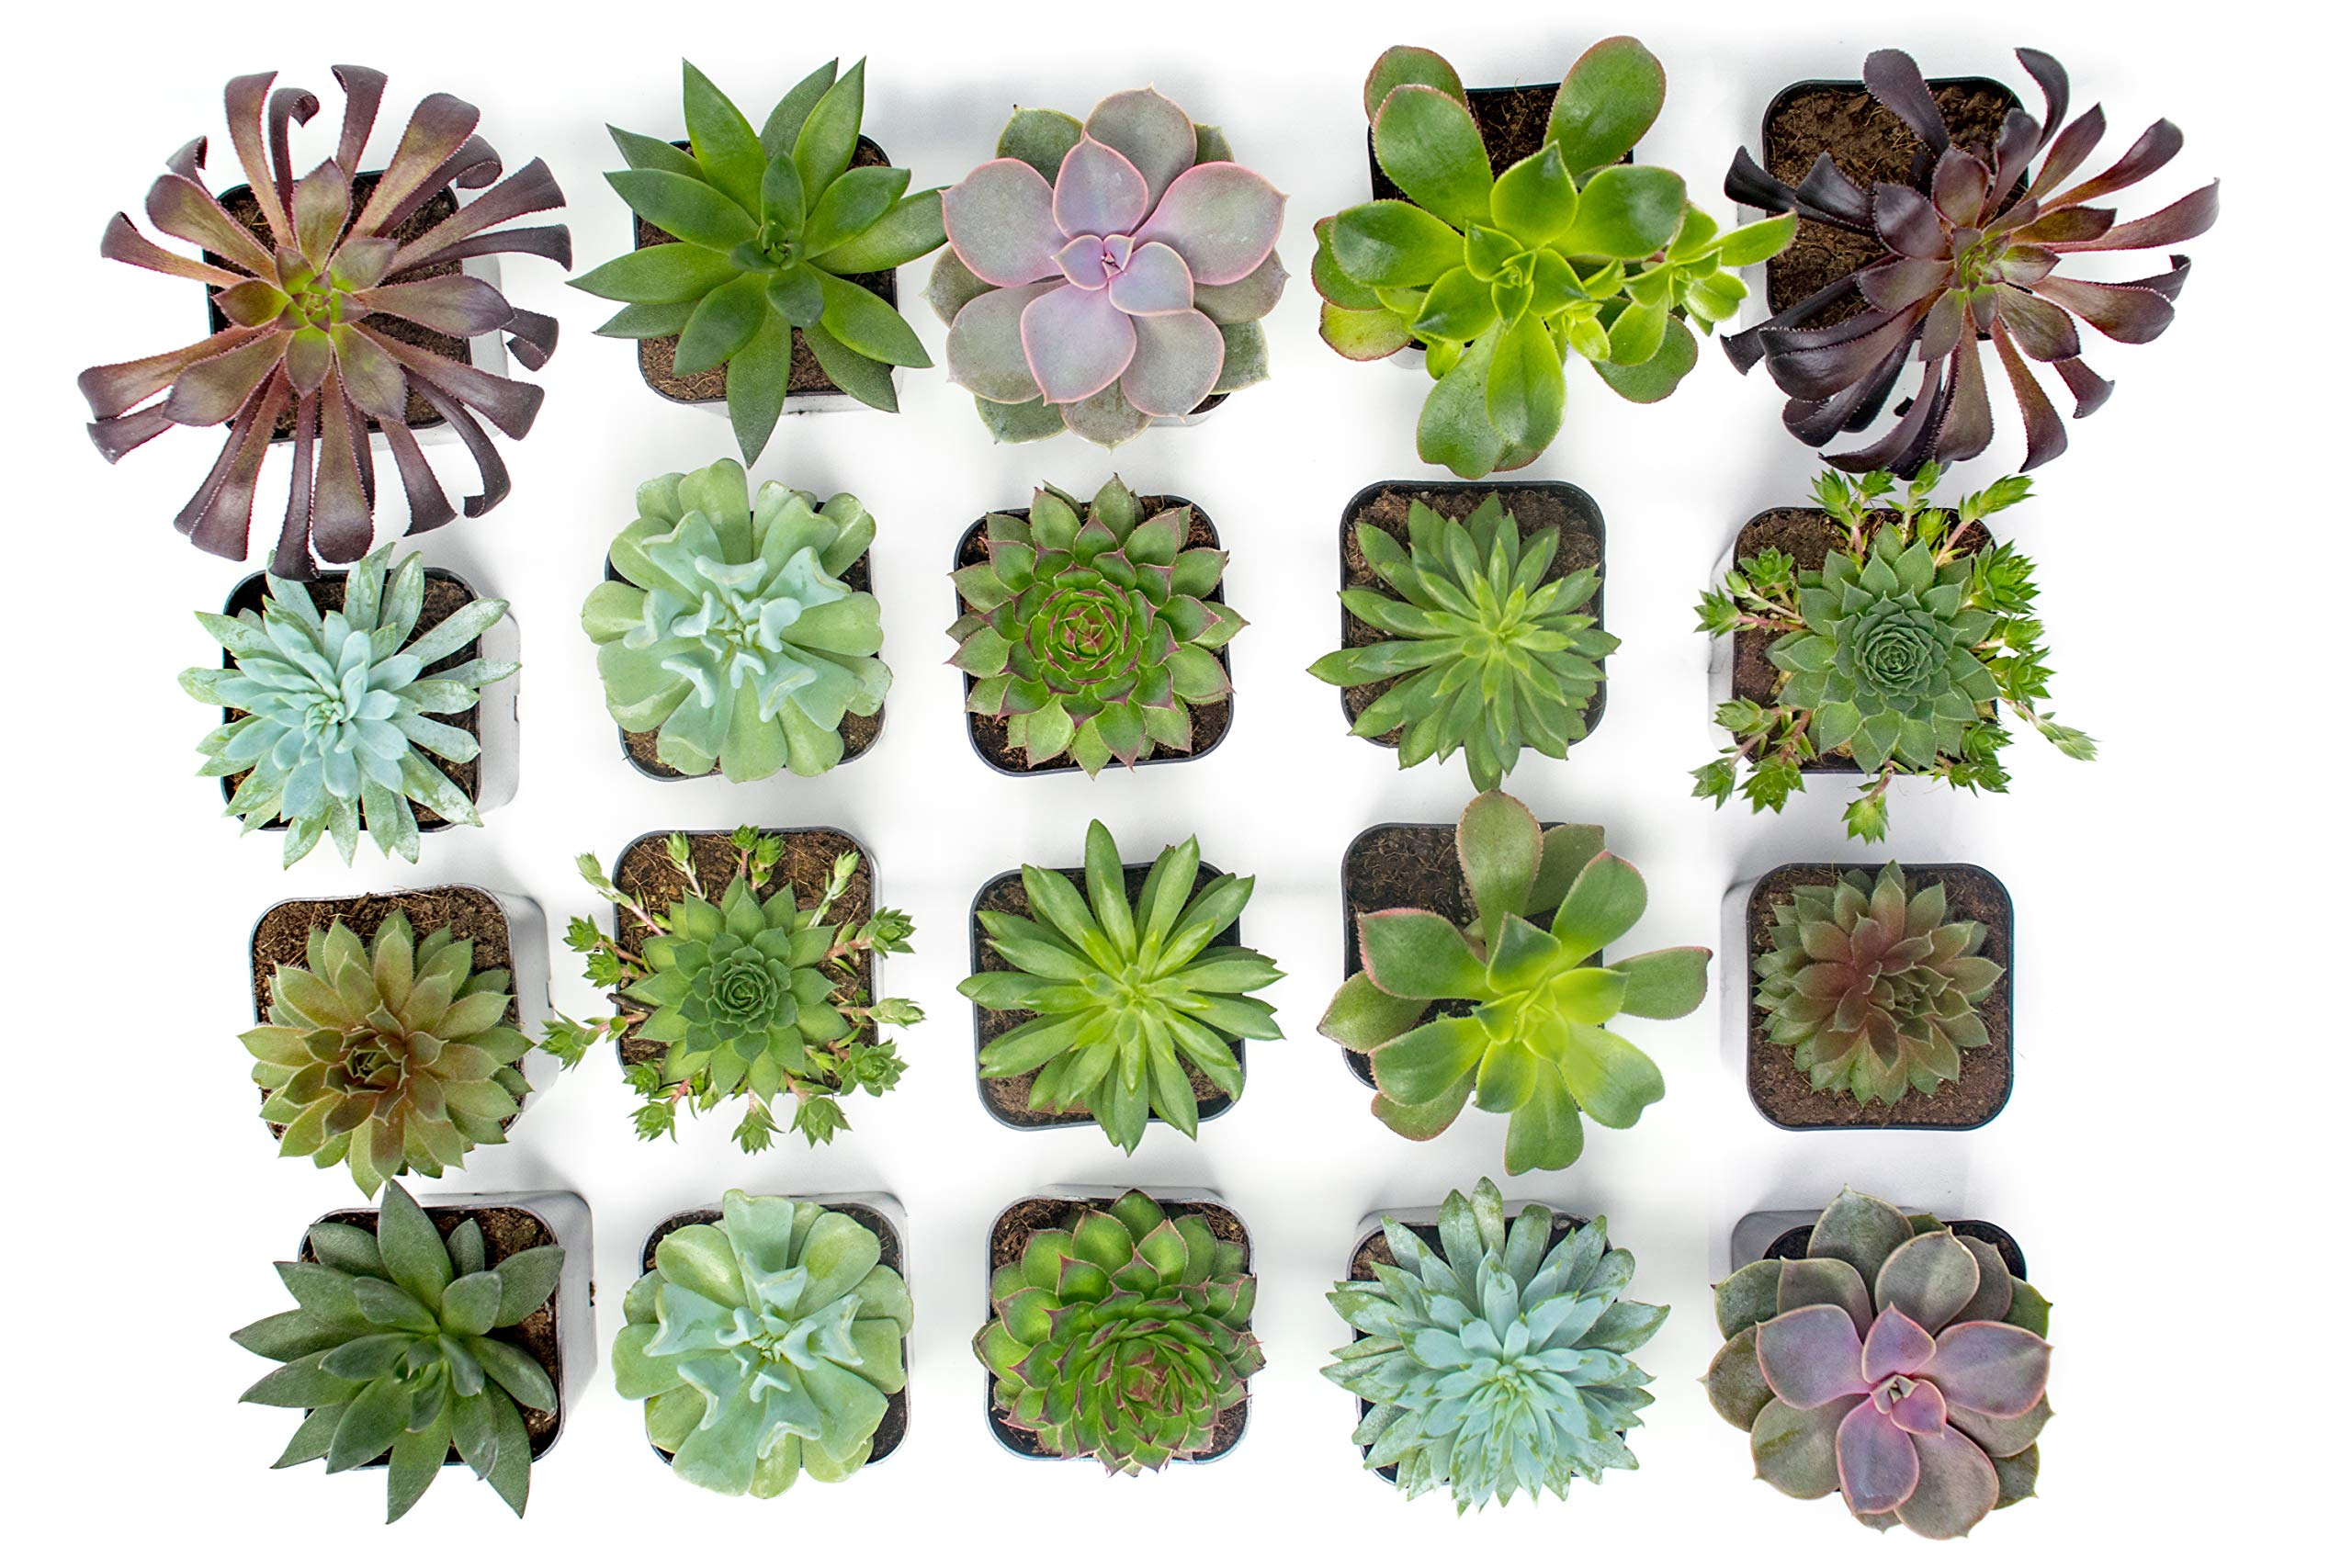 Succulent Plants (20 Pack) Fully Rooted in Planter Pots with Soil | Real Live Potted Succulents / Unique Indoor Cactus Decor by Plants for Pets 6 HAND SELECTED: Every pack of succulents we send is hand-picked. You will receive a unique collection of species that are fully rooted and similar to the product photos. Note that we rotate our nursery stock often, so the exact species we send changes every week. THE EASIEST HOUSE PLANTS: More appealing than artificial plastic or fake faux plants, and care is a cinch. If you think you can't keep houseplants alive, you're wrong; our succulents don't require fertilizer and can be planted in a decorative pot of your choice within seconds. DIY HOME DECOR: The possibilities are only limited by your imagination; display them in a plant holder, a wall mount, a geometric glass vase, or even in a live wreath. Because of their amazingly low care requirements, they can even make the perfect desk centerpiece for your office.